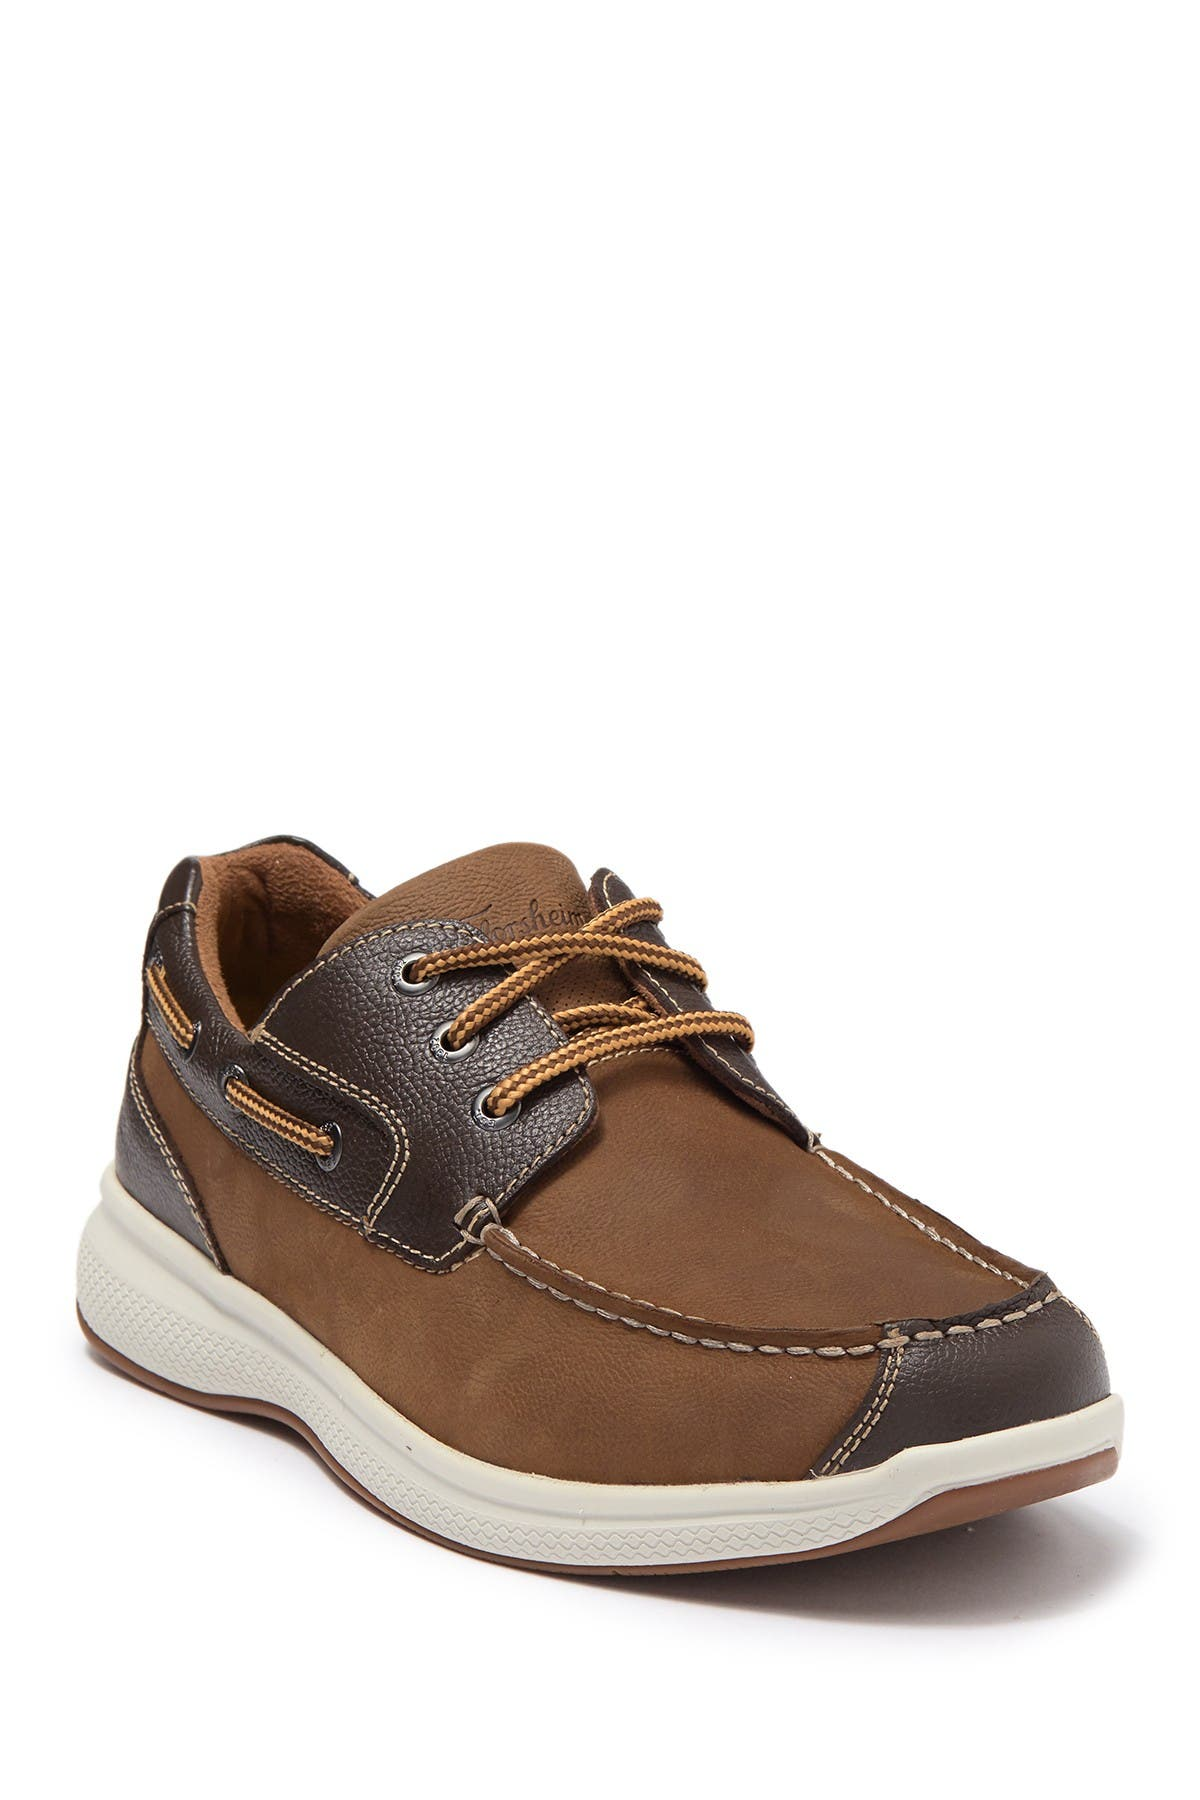 Image of Florsheim Superior Boat Shoe